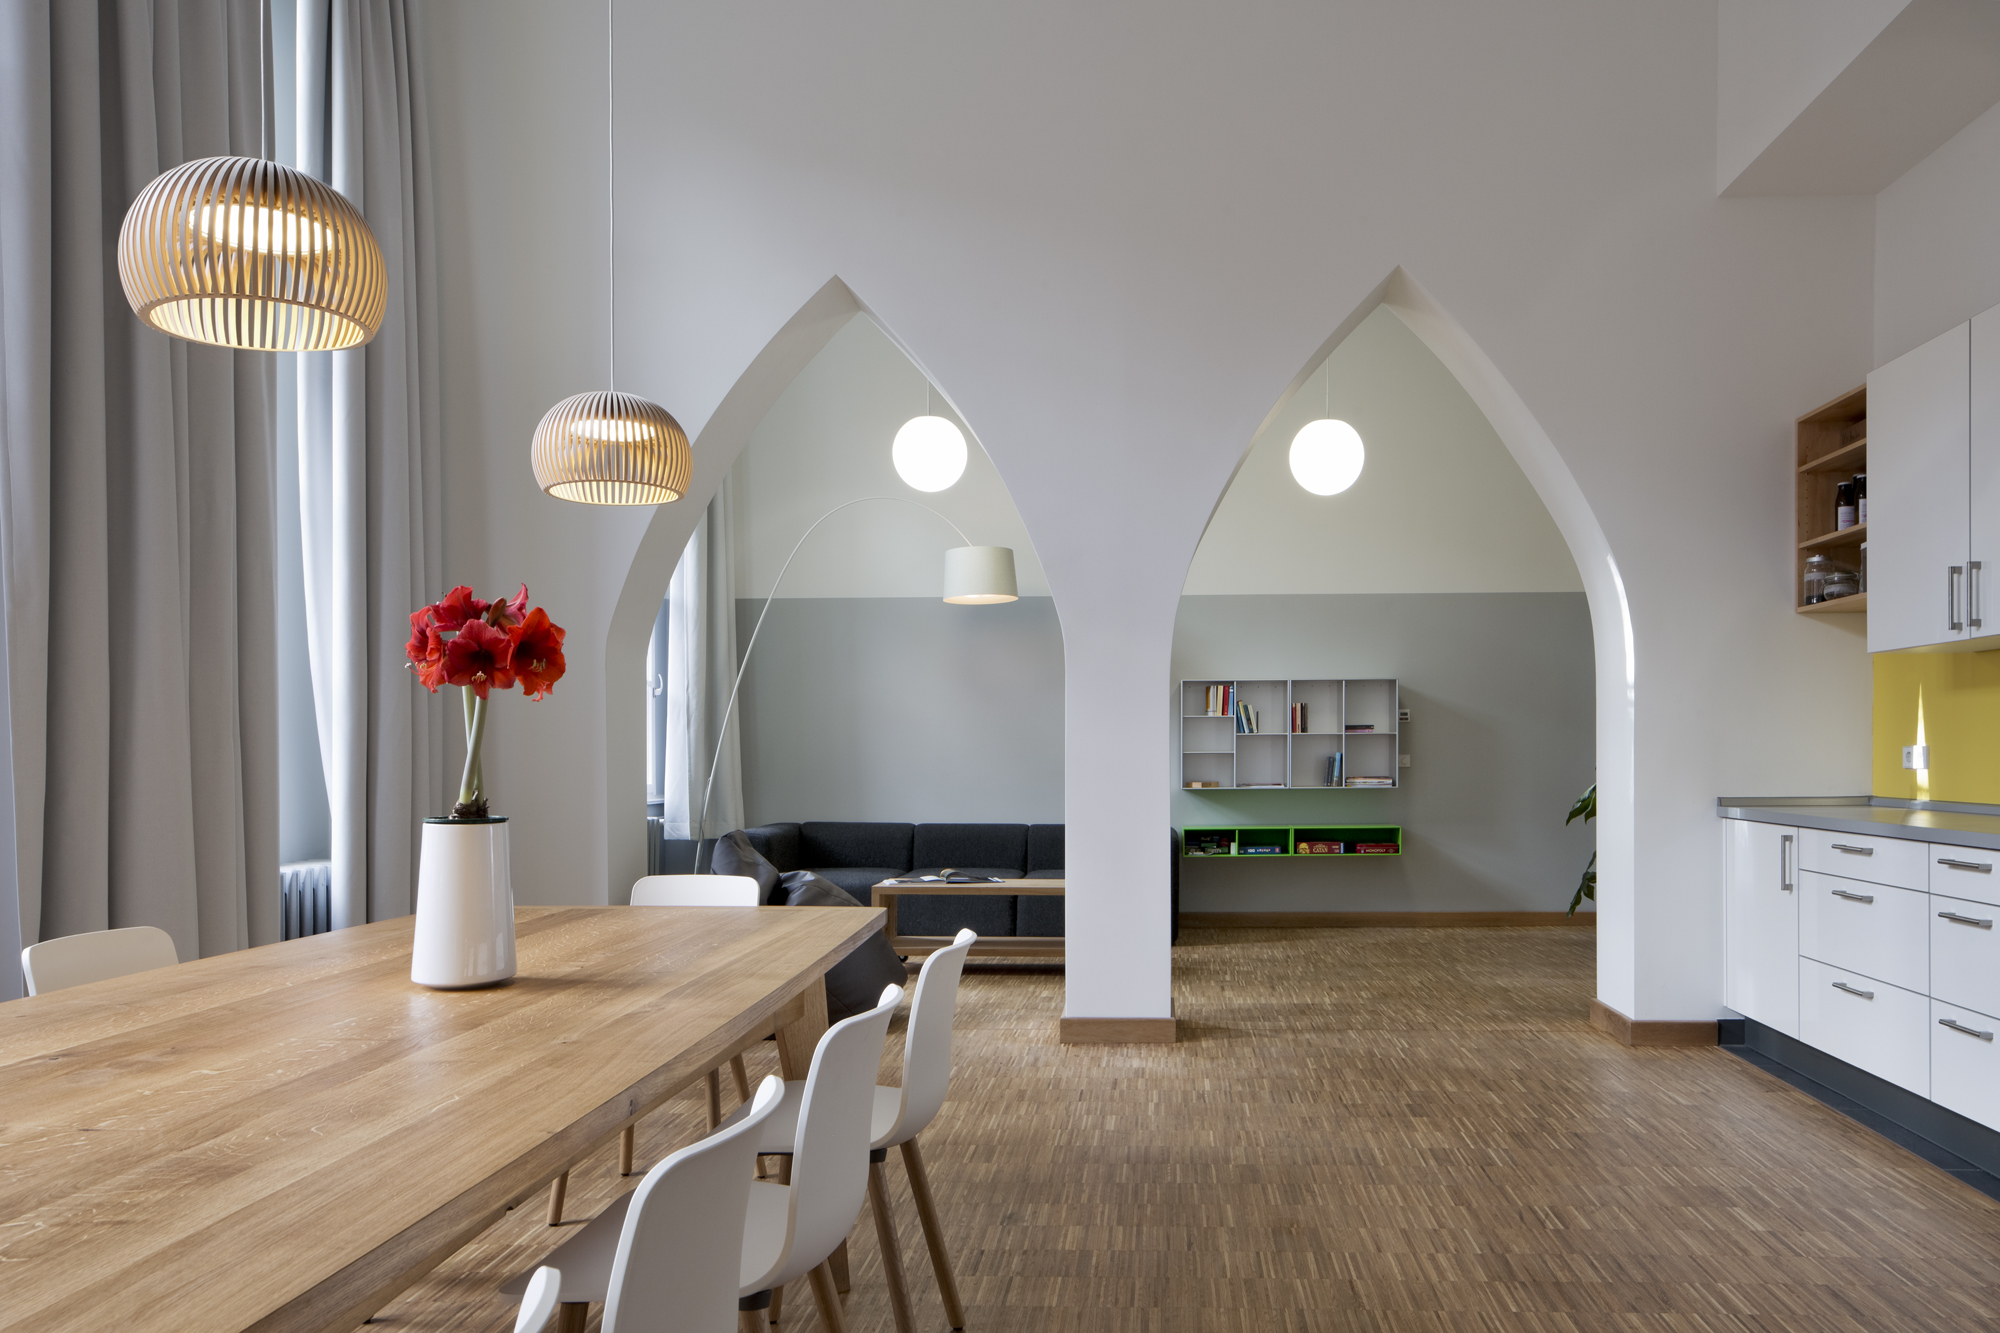 SOTERIA BERLIN - VIEW TO THE LIVING ROOM